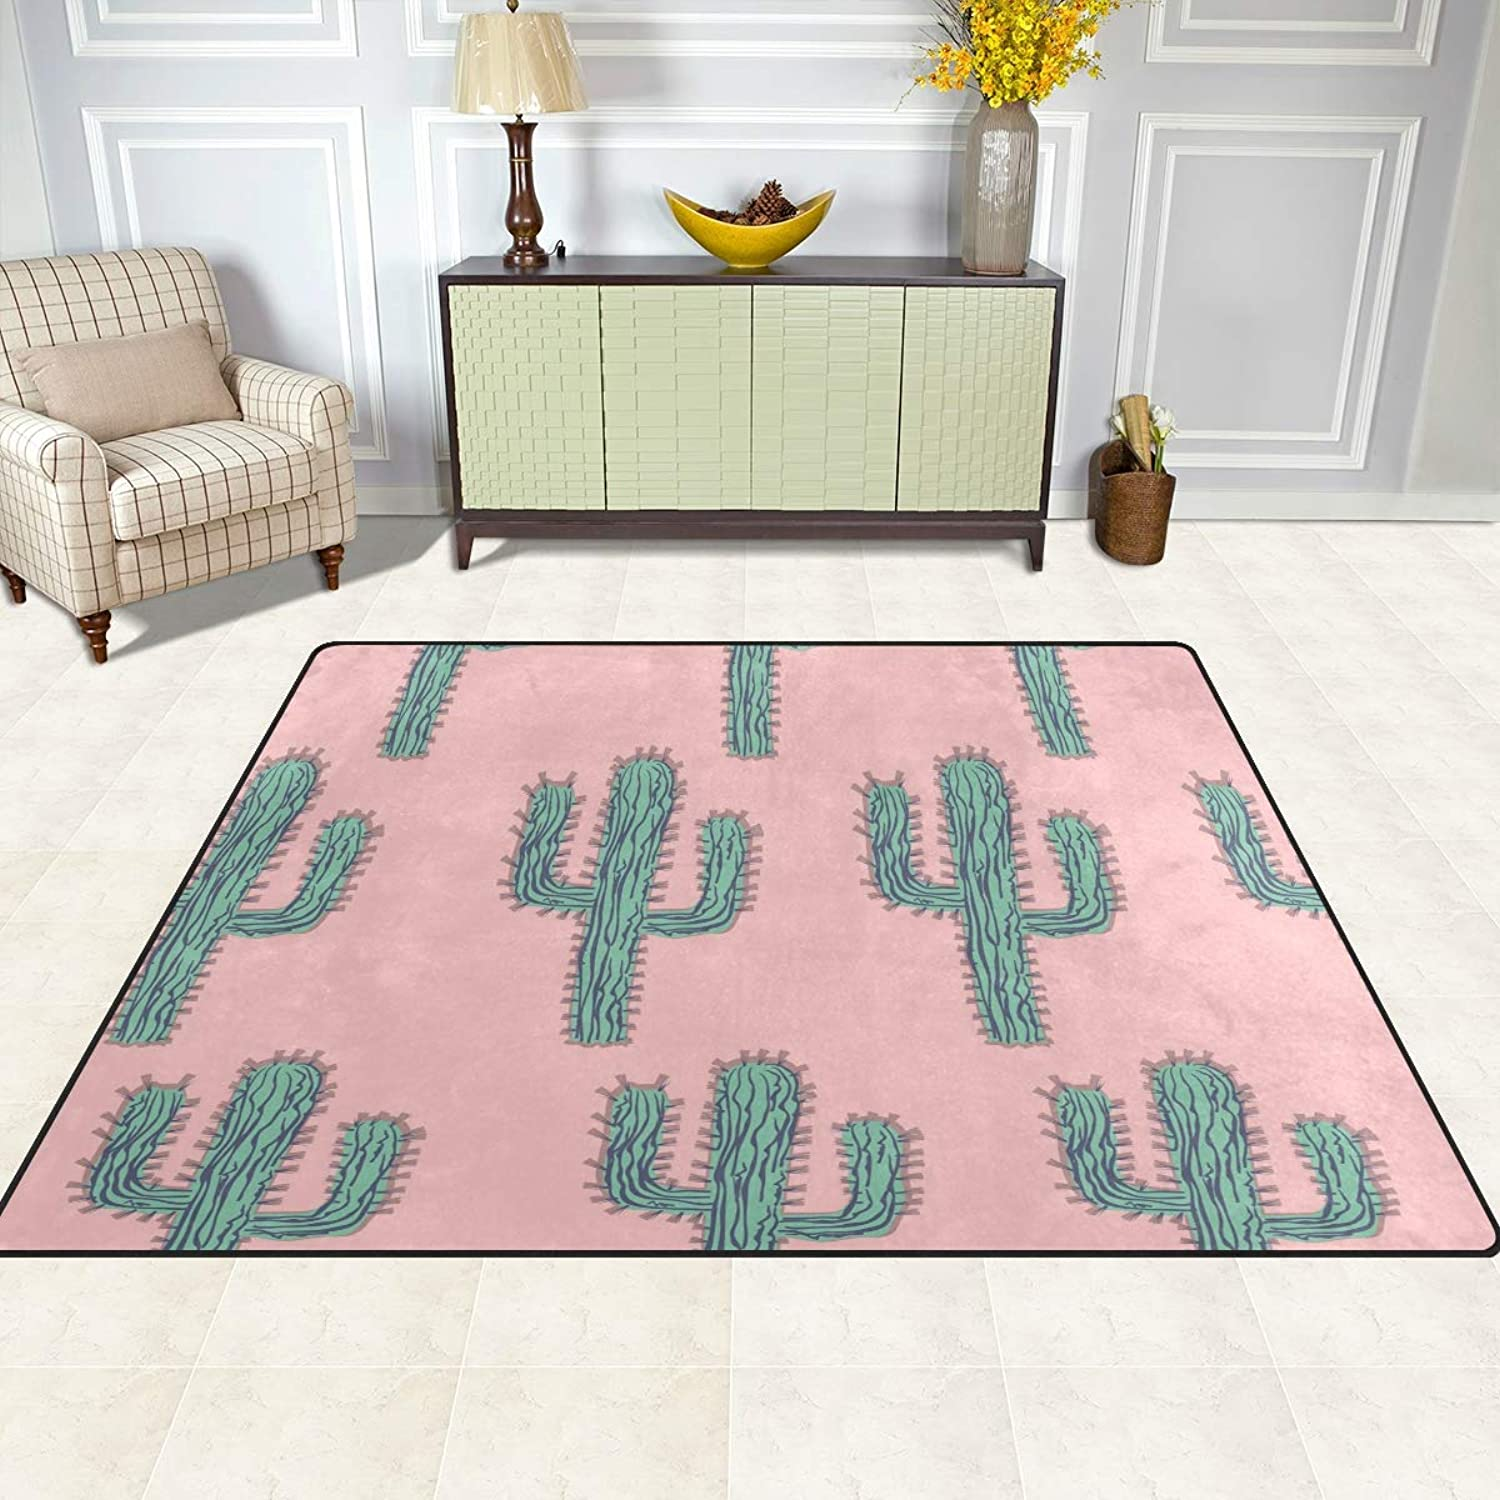 FAJRO Green Cactus Forest Rugs for entryway Doormat Area Rug Multipattern Door Mat shoes Scraper Home Dec Anti-Slip Indoor Outdoor